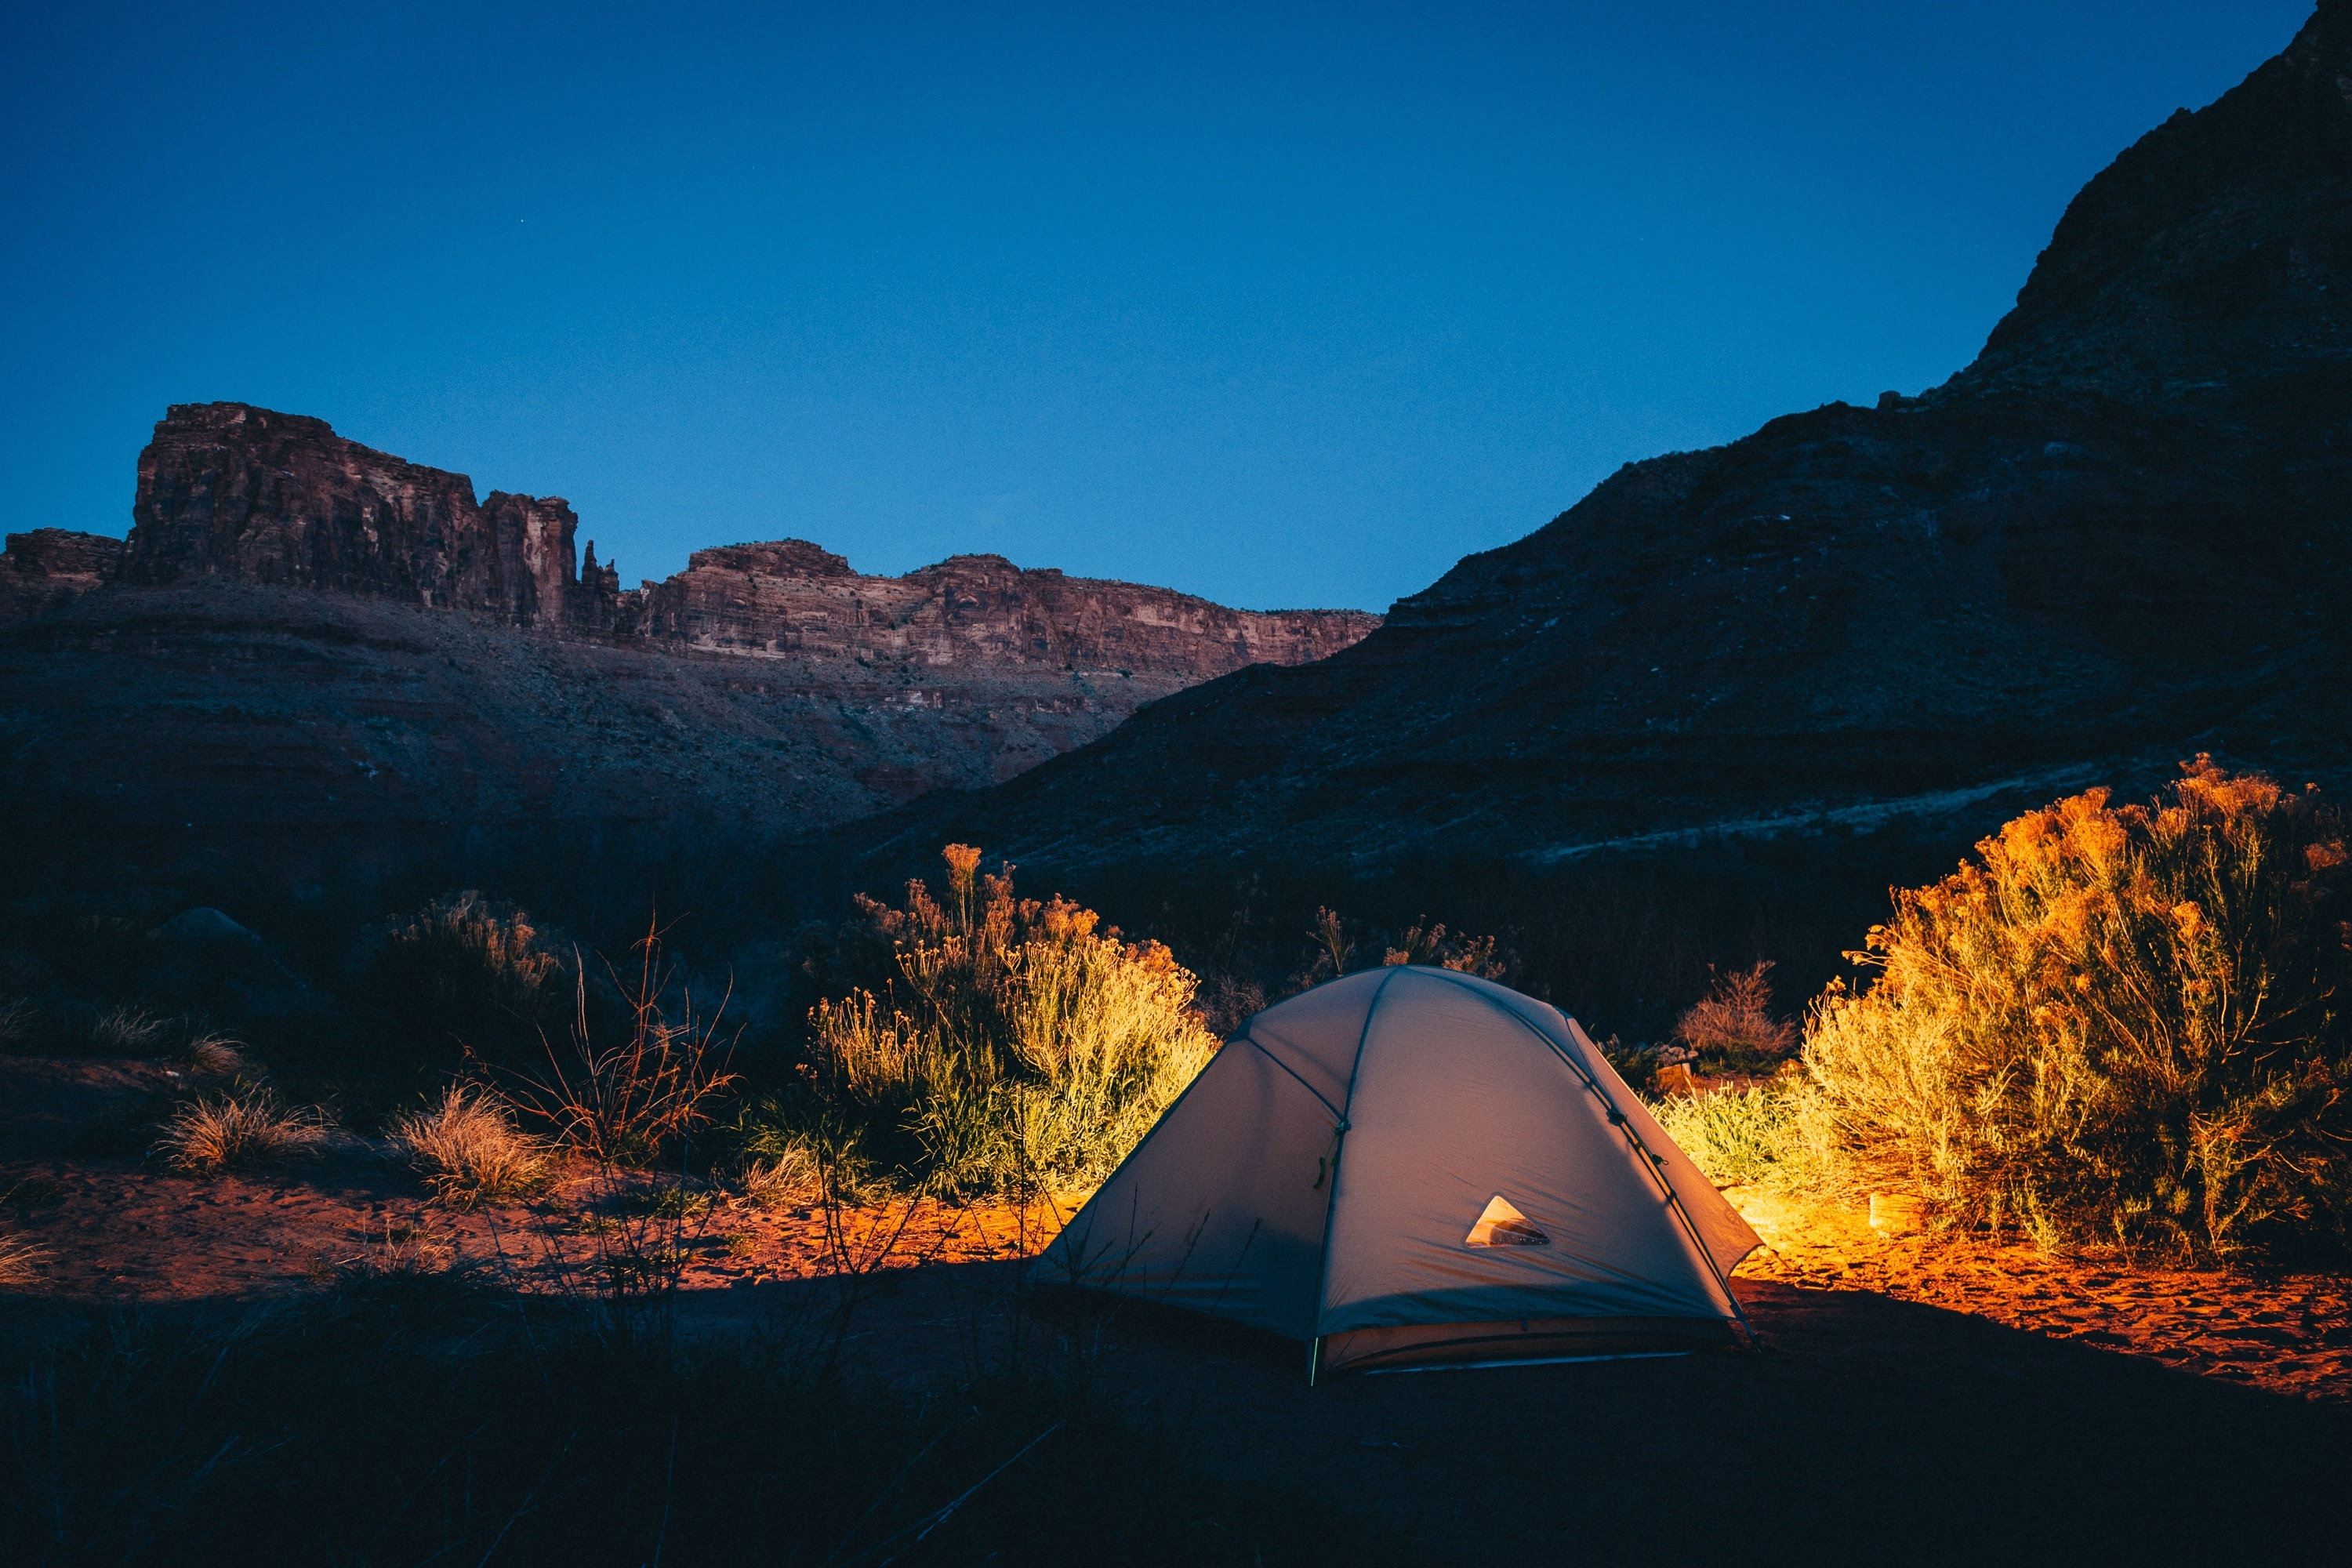 99120 download wallpaper Nature, Sunset, Mountains, Tent, Camping, Campsite screensavers and pictures for free